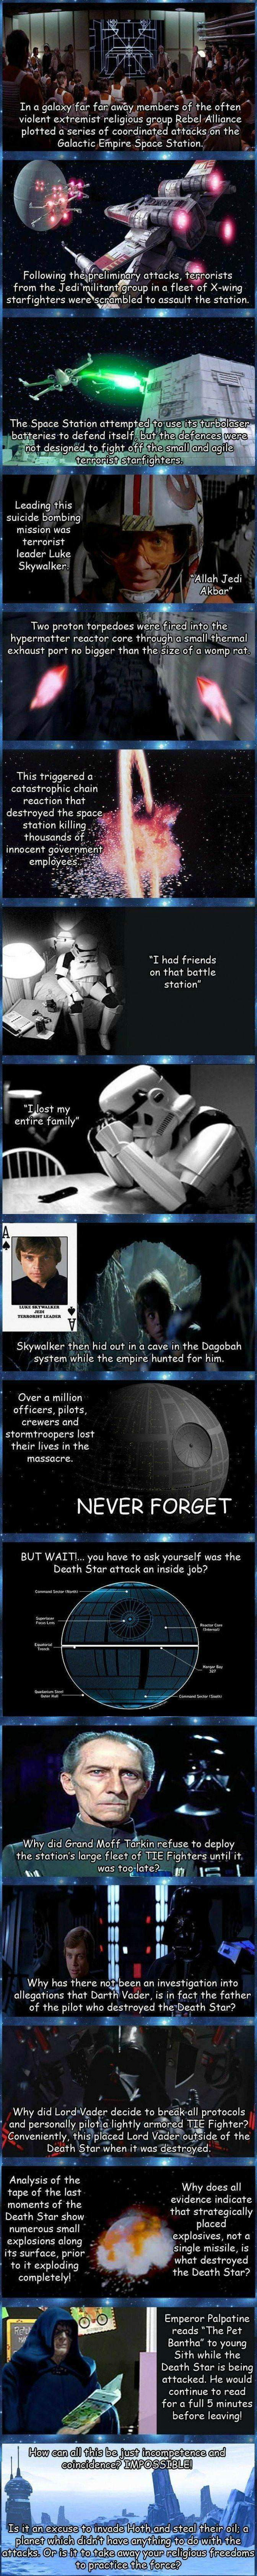 attack-on-death-star-inside-job.jpg